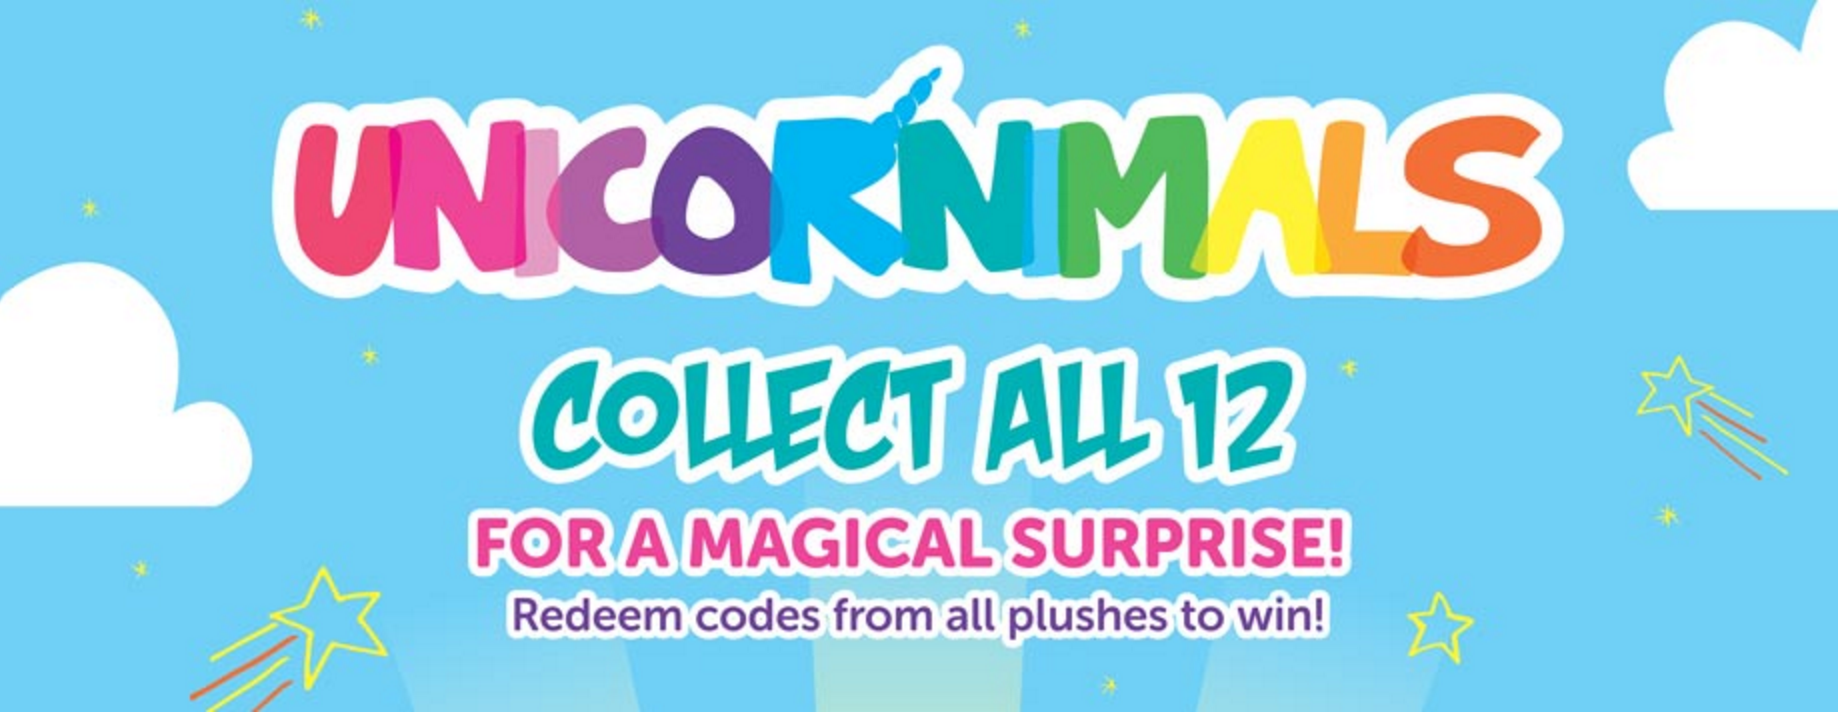 Unicornimals – Collect 12 For A Magical Surprise!